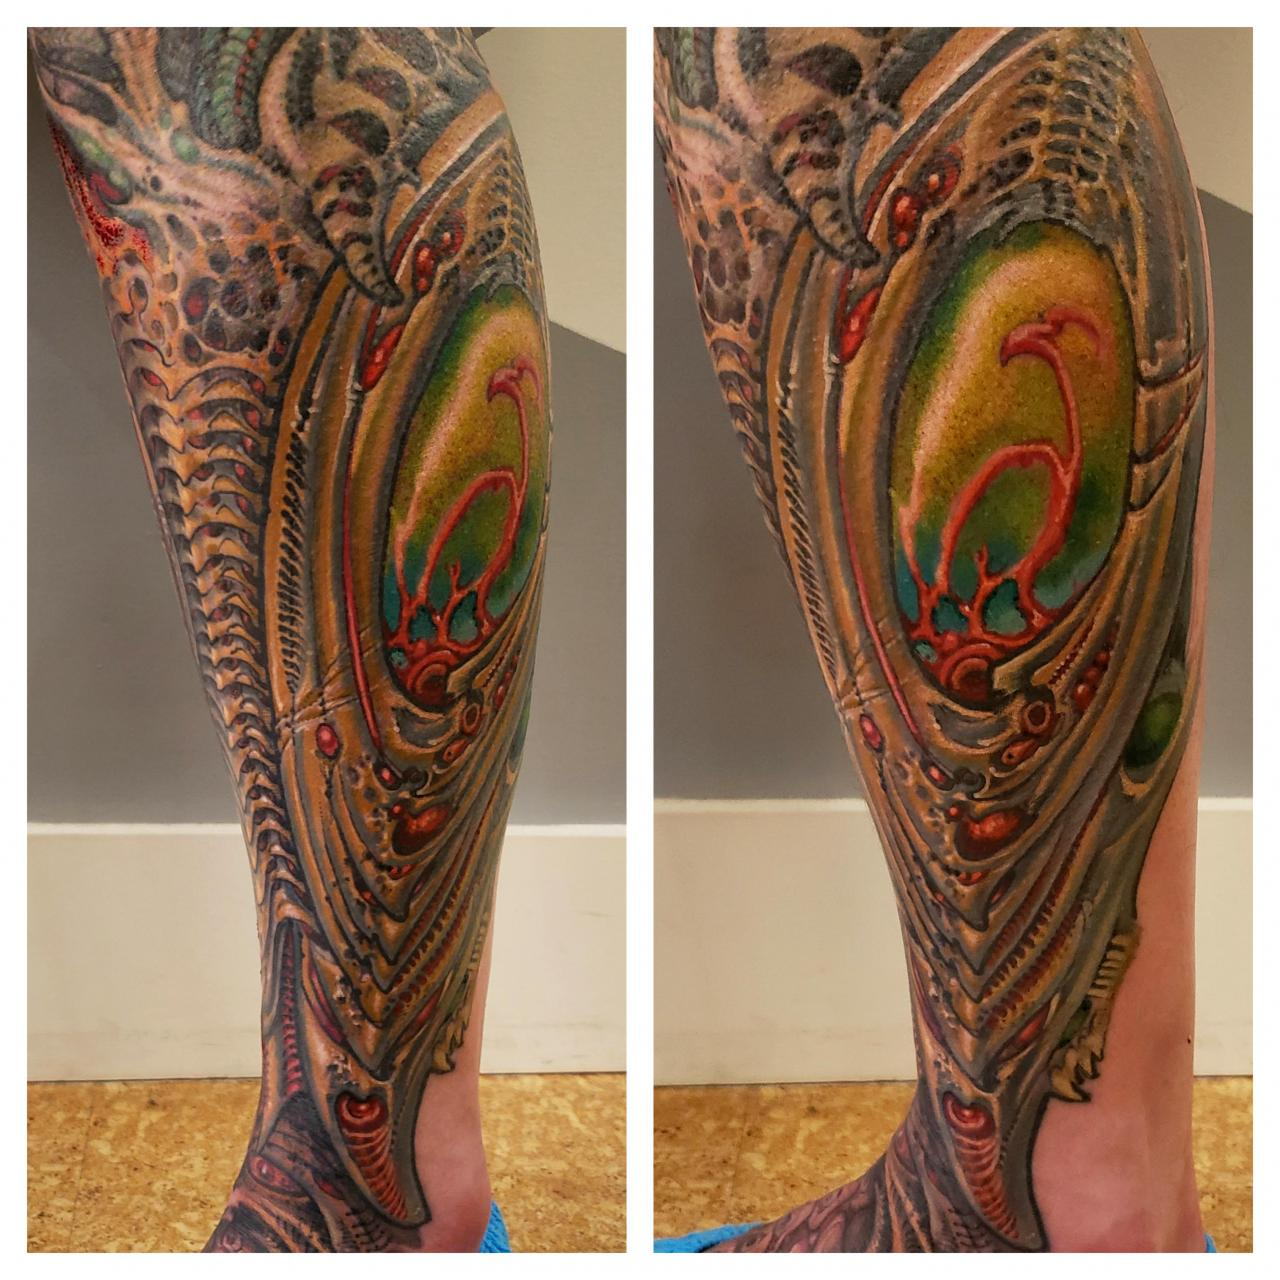 Biomech lower leg by me, Jeff Croci of 7th son tattoo in San Francisco CA